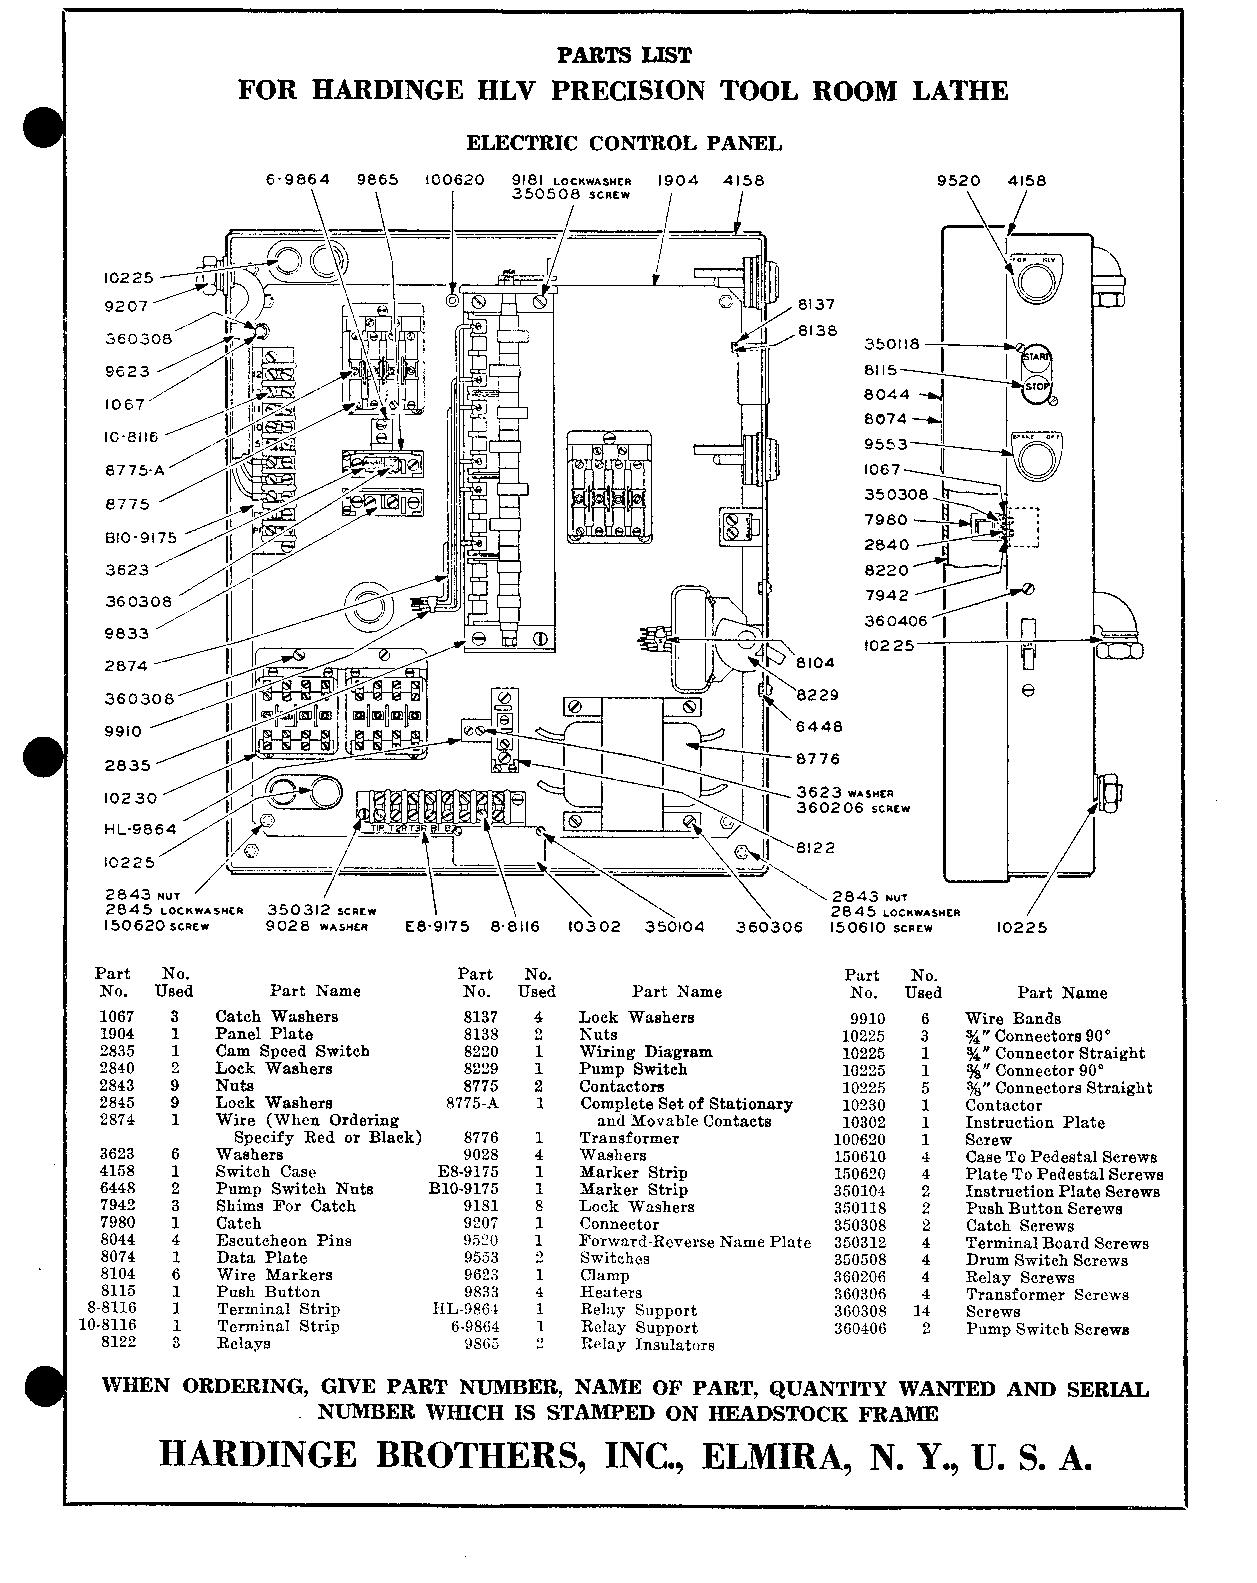 Hardinge hlv parts list page 24 electric control panel cheapraybanclubmaster Gallery